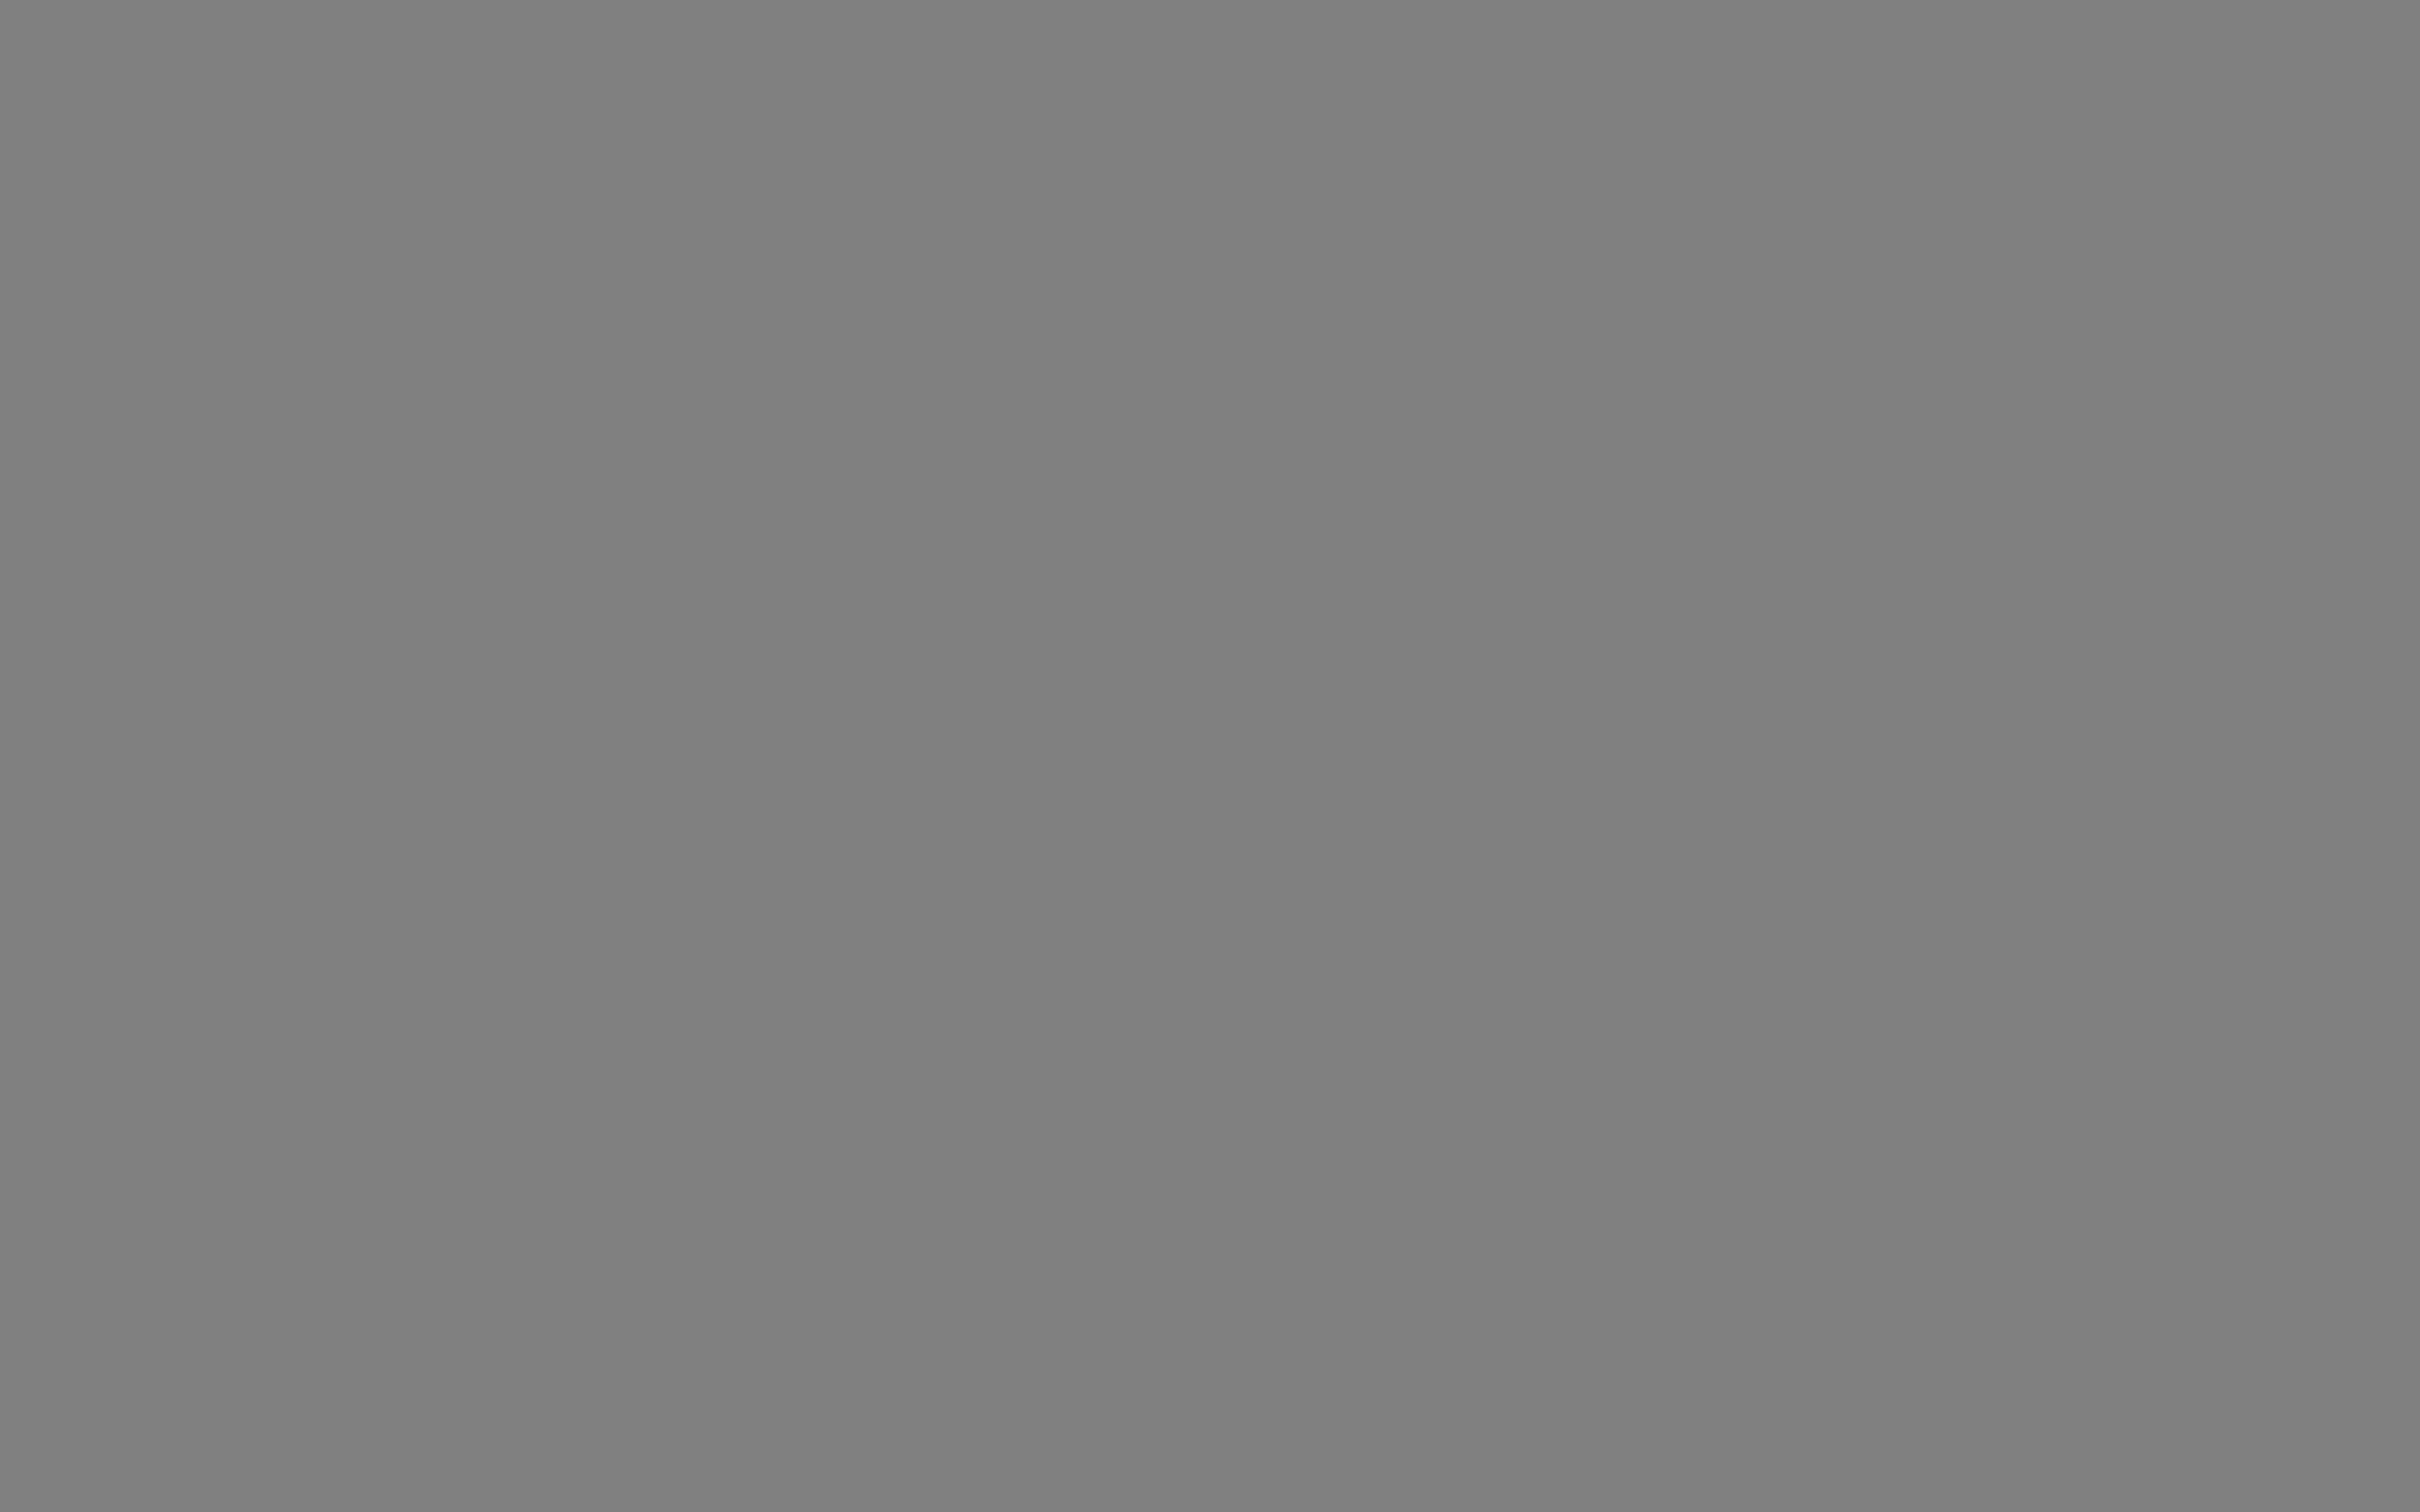 2560x1600 Gray Web Gray Solid Color Background